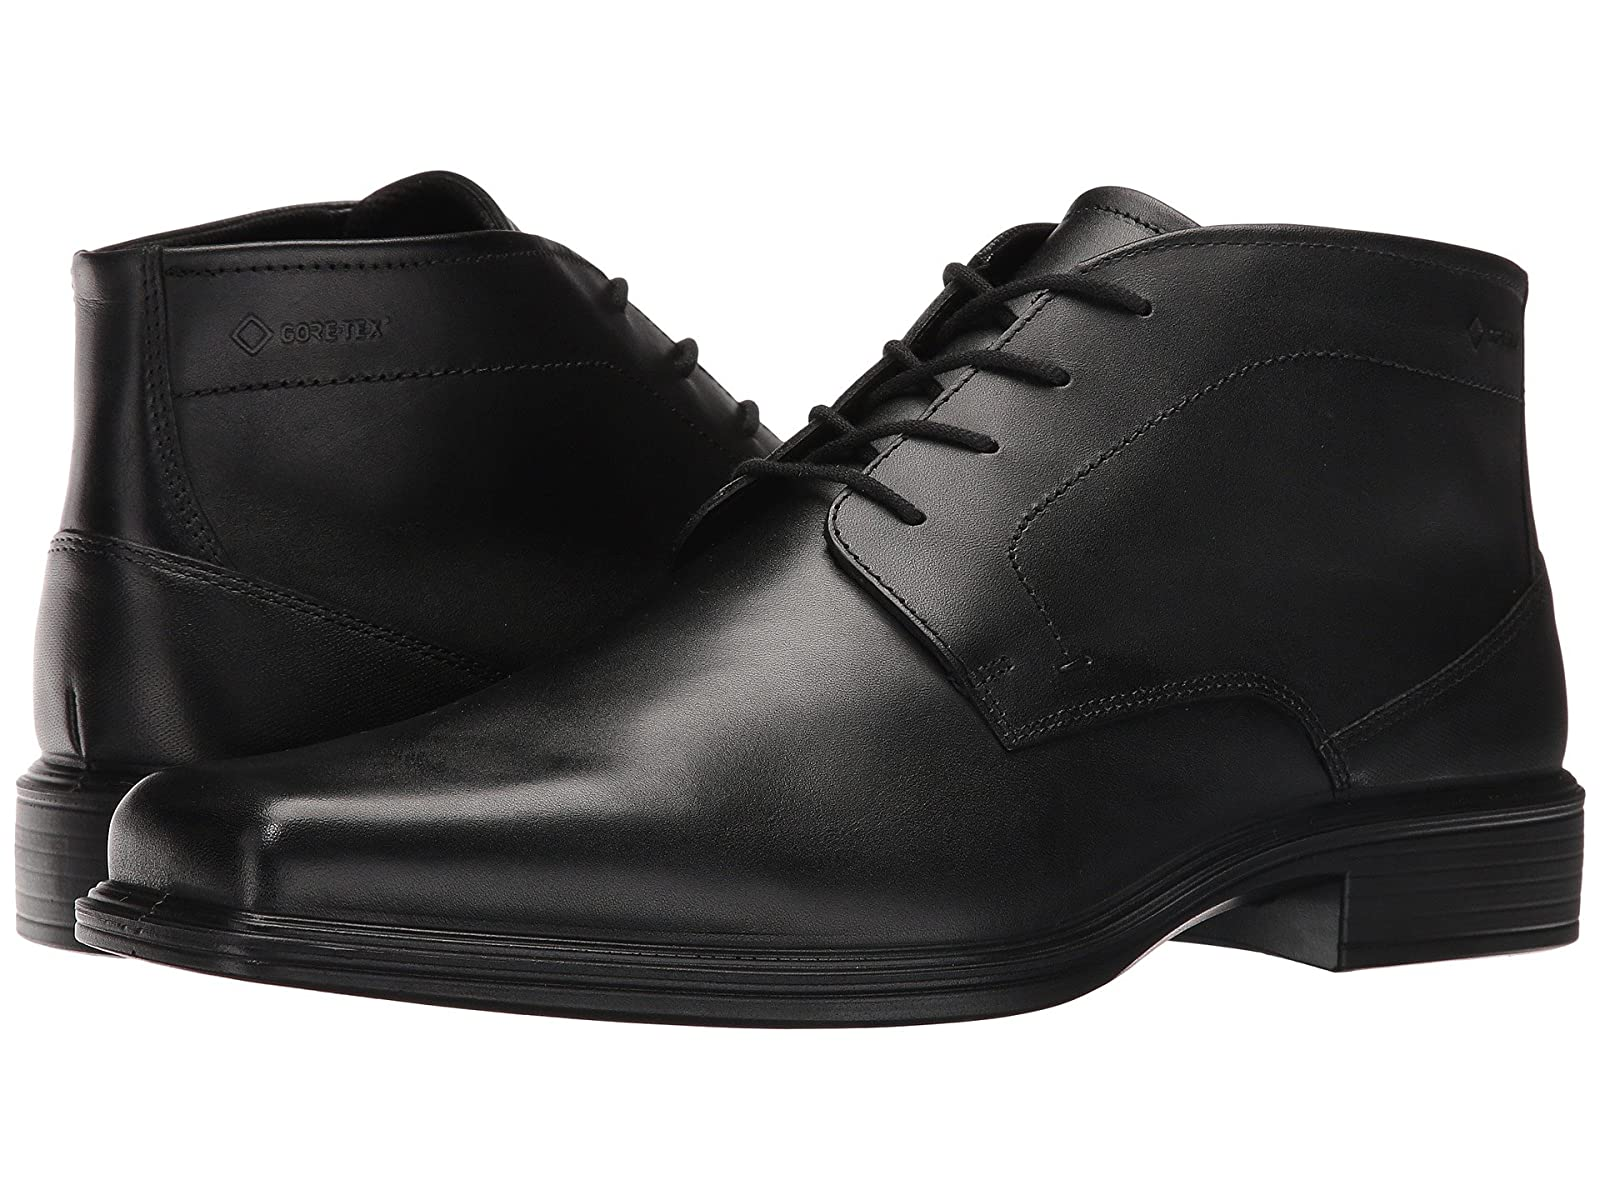 ECCO Johannesburg GTX BootCheap and distinctive eye-catching shoes